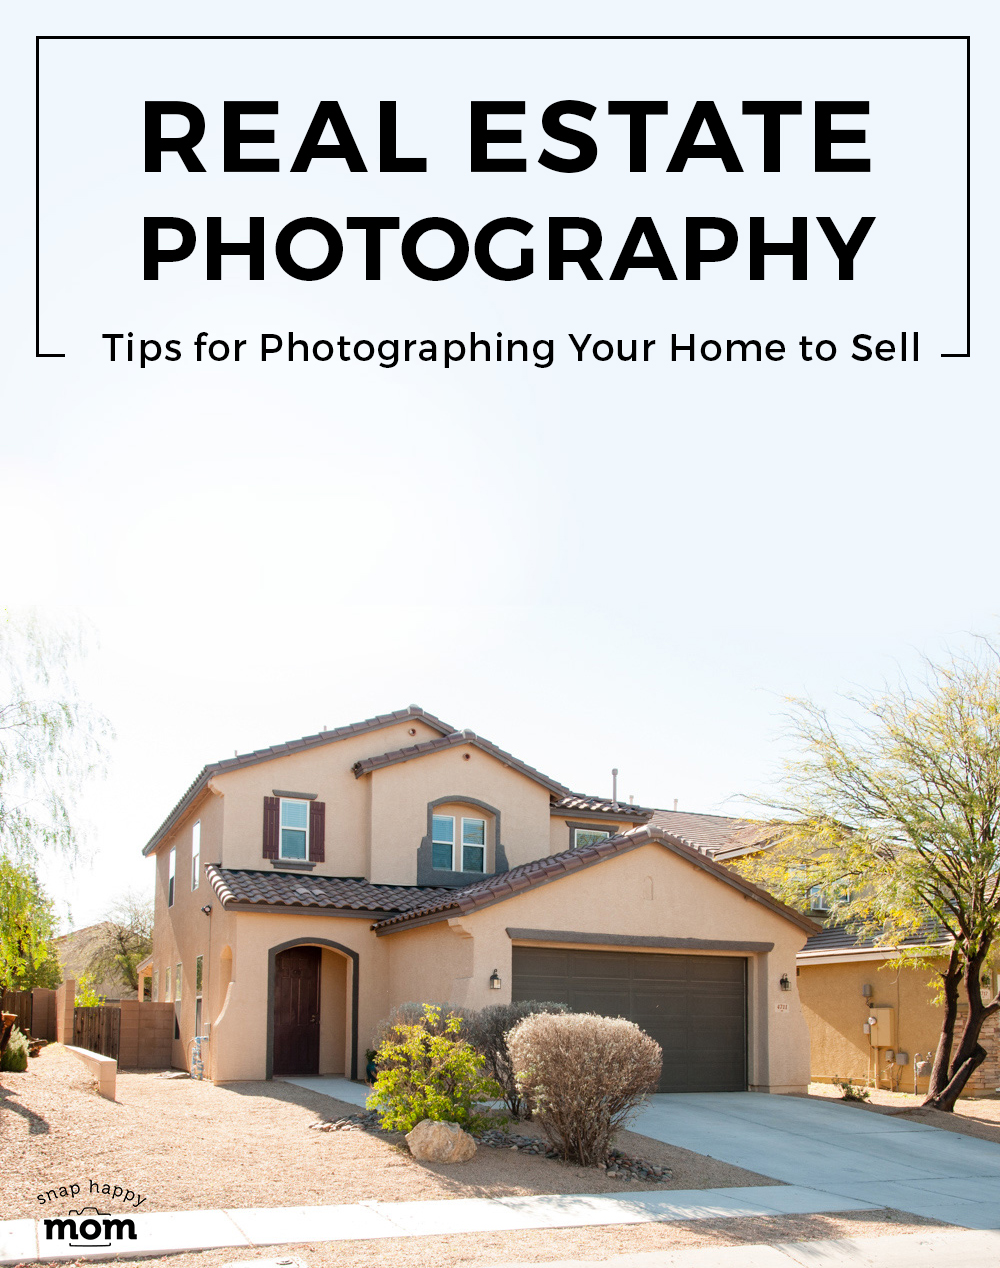 Real Estate Photography - How to take pictures of your own home exterior to get sell.